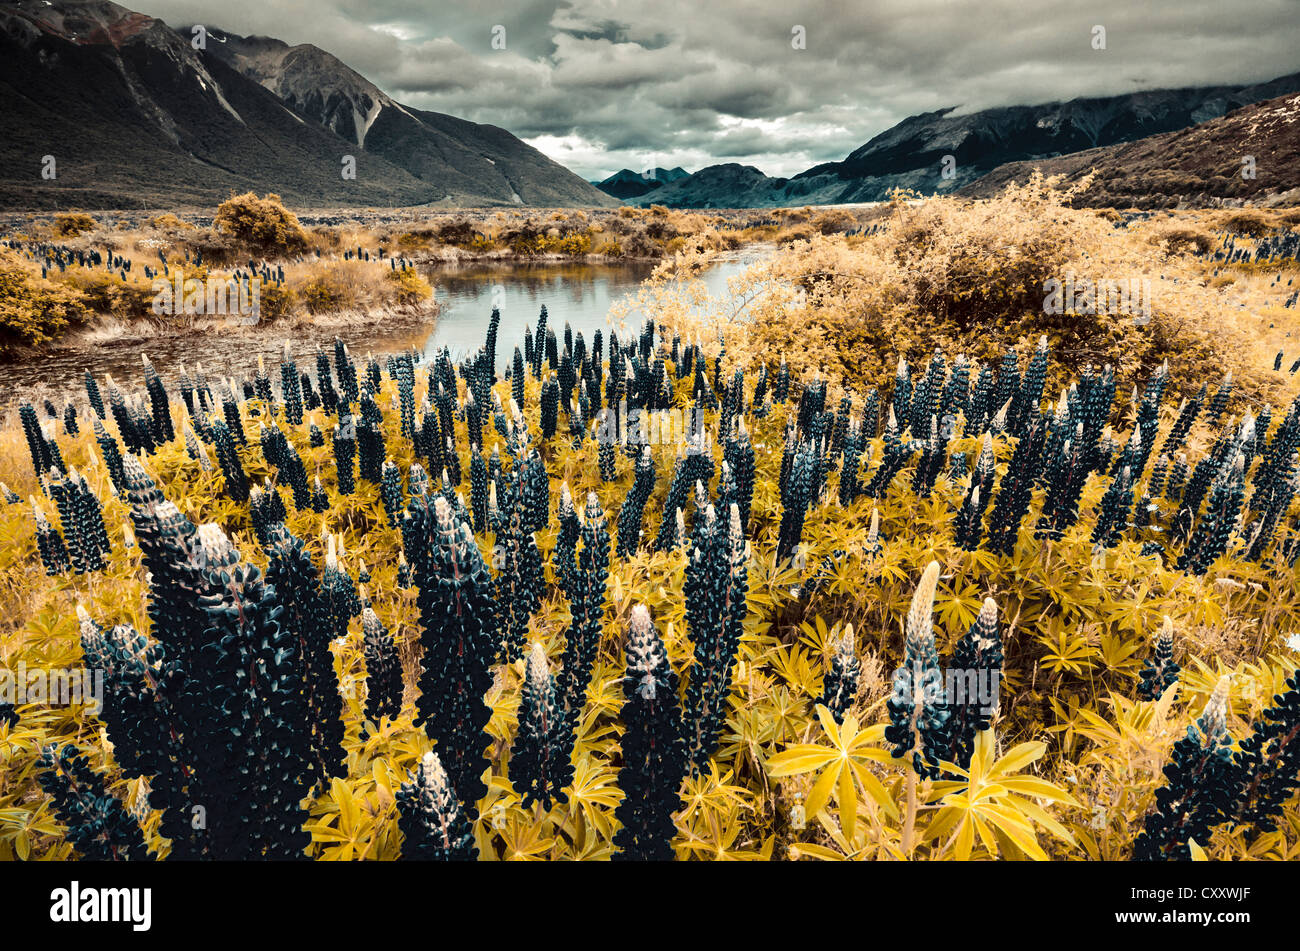 Lupins (Lupinus) at Arthur's Pass National Park, colour distortion, South Island, New Zealand, Oceania - Stock Image